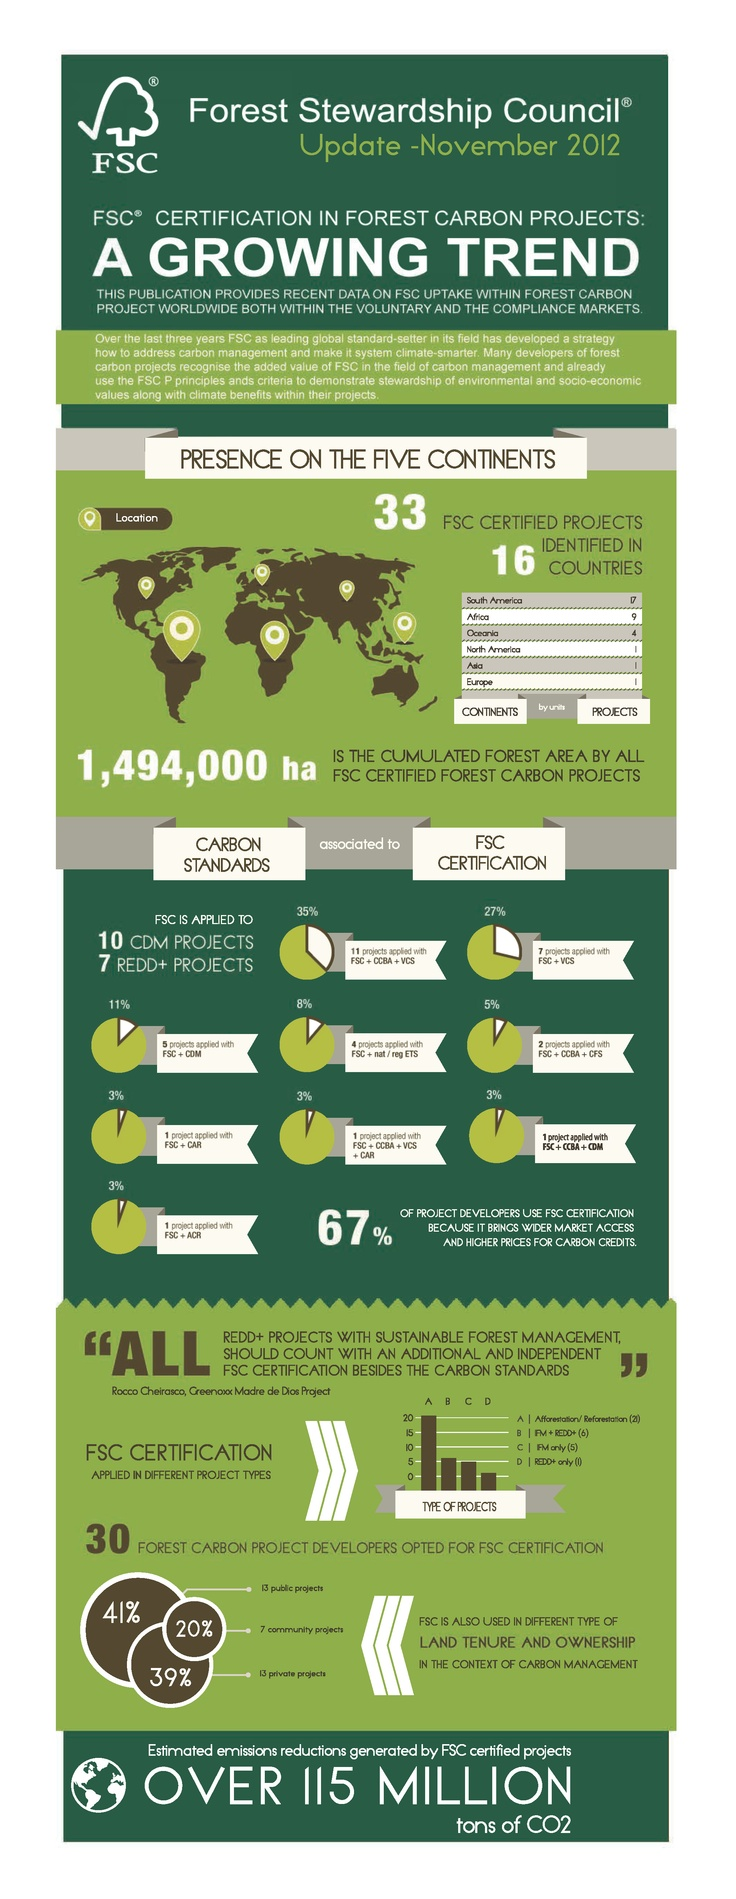 Infographic on FSC Certified Carbon Projects launched at COP 18  The infographic compiles facts and figures about FSC use in the field of carbon. The publication will be regularly updated to reflect the growing role of FSC in this sphere.